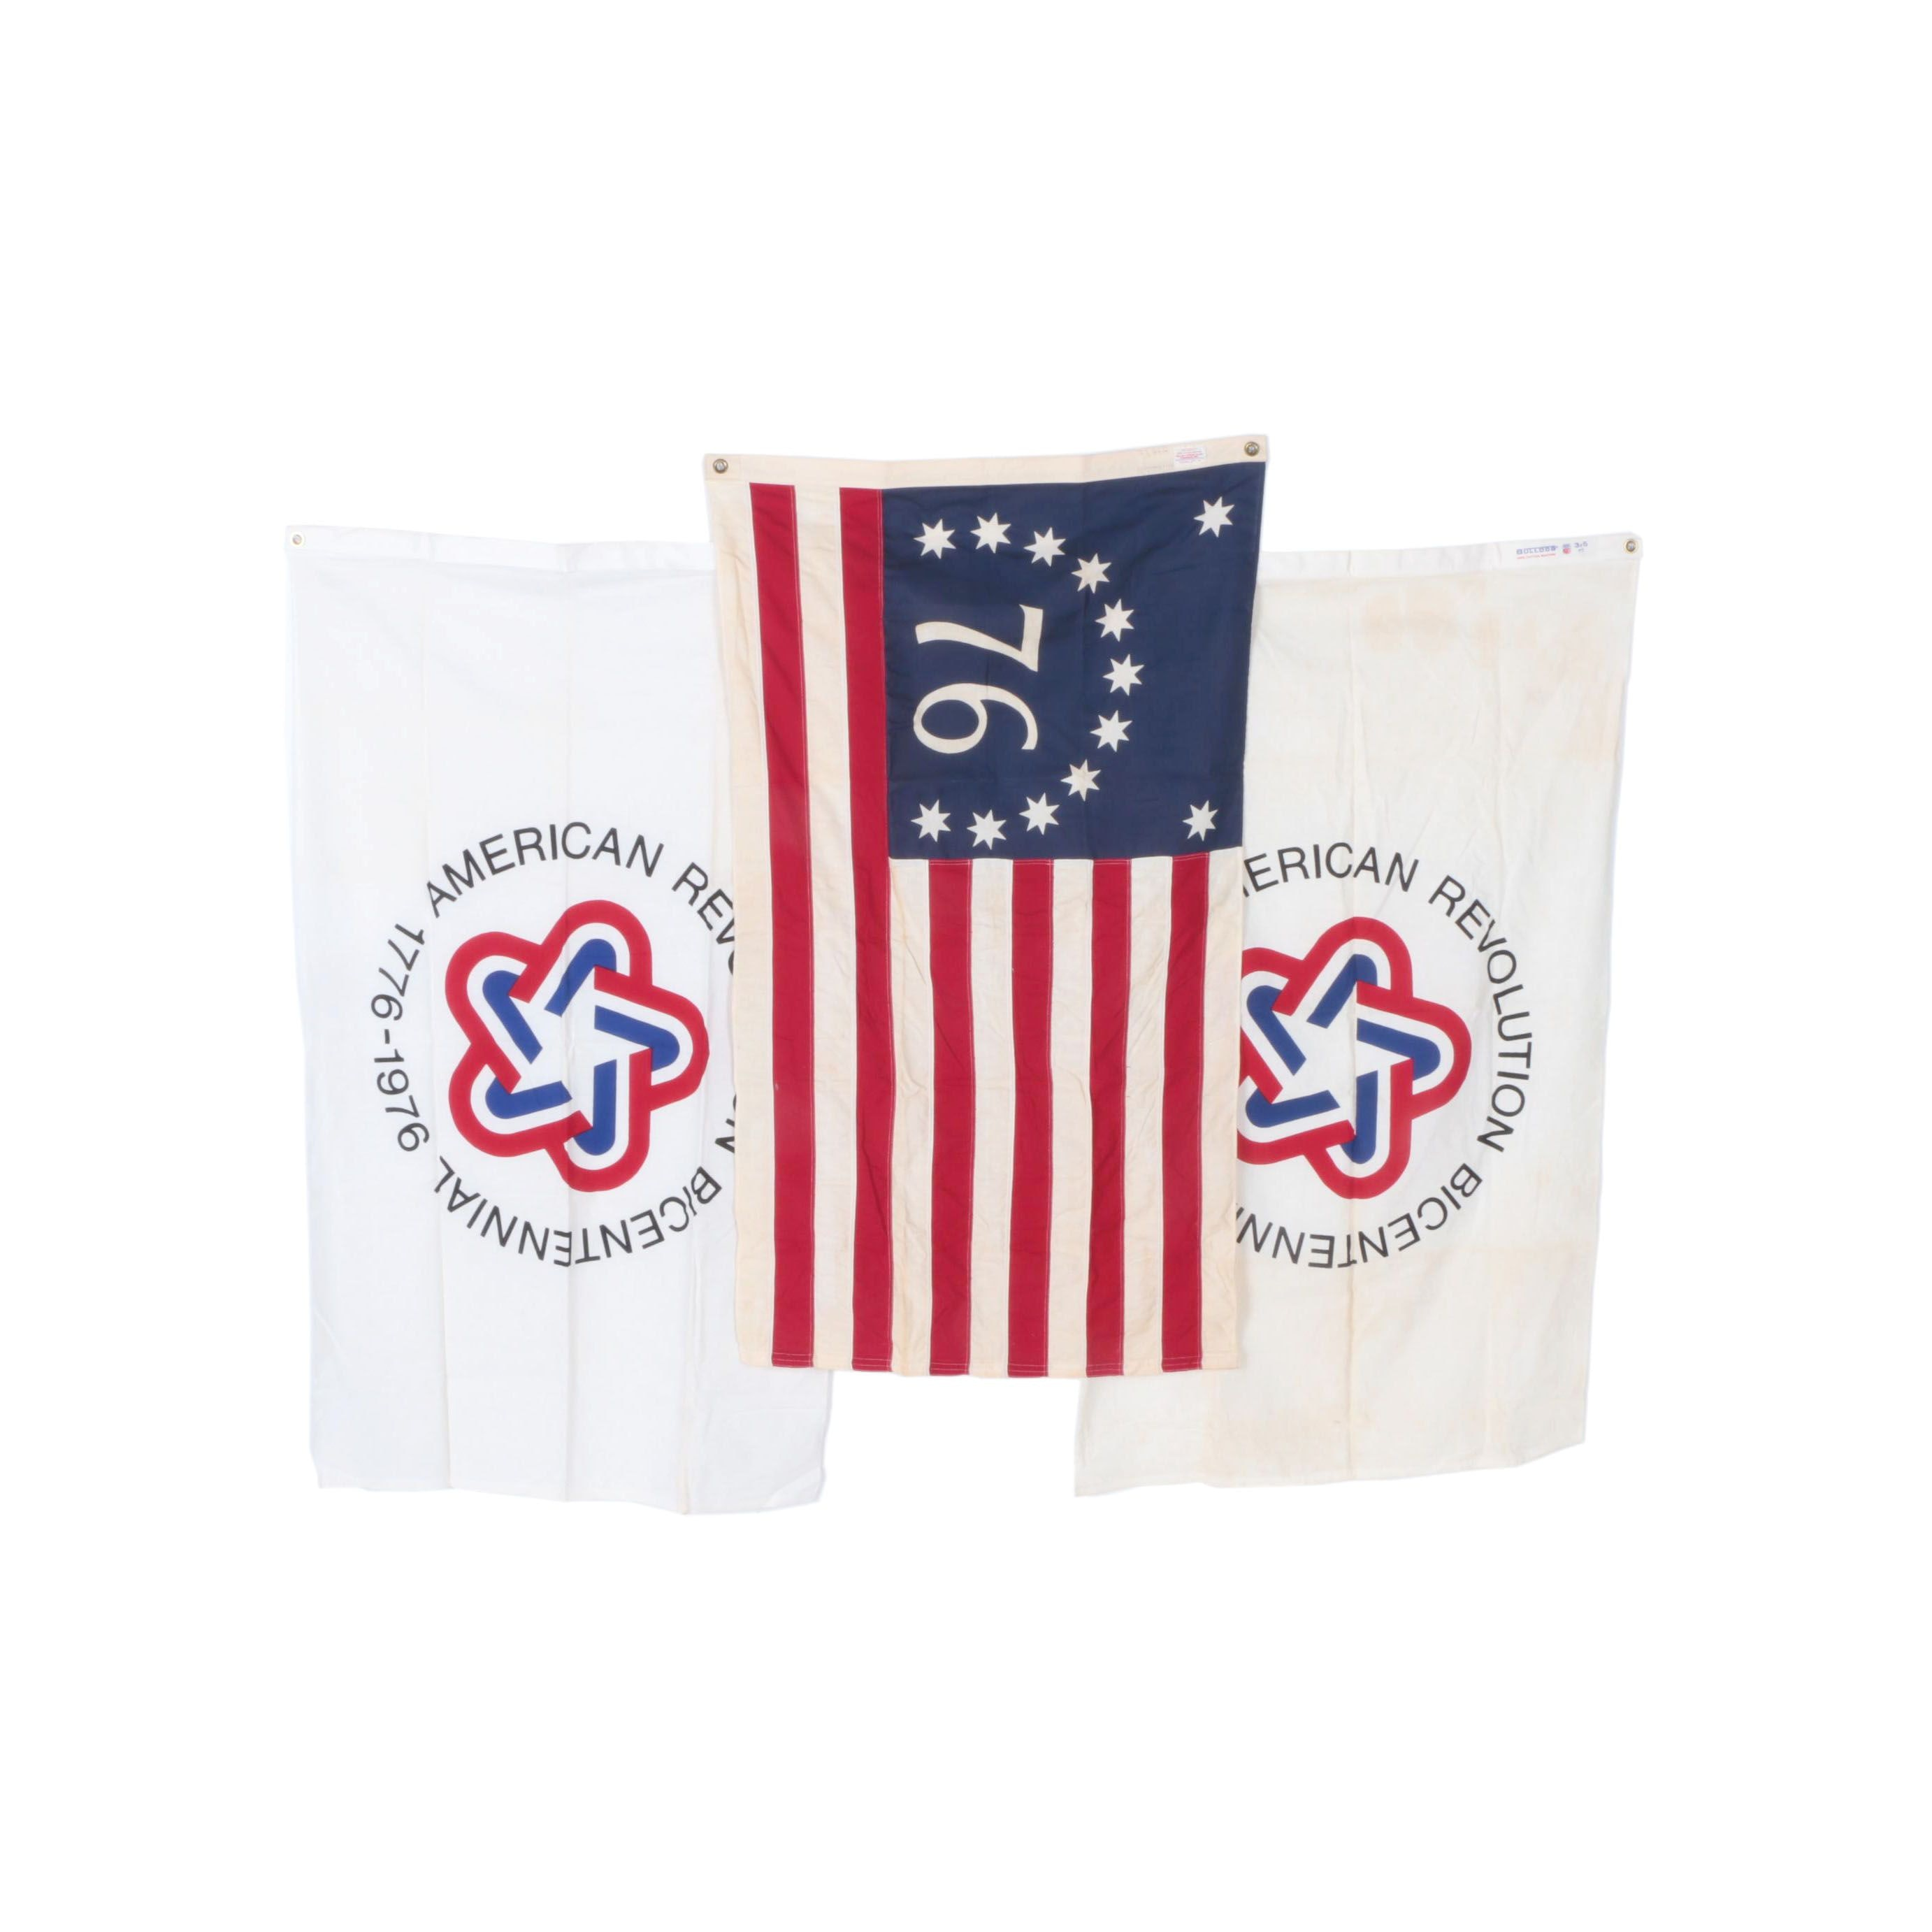 American and Bicentennial Flags